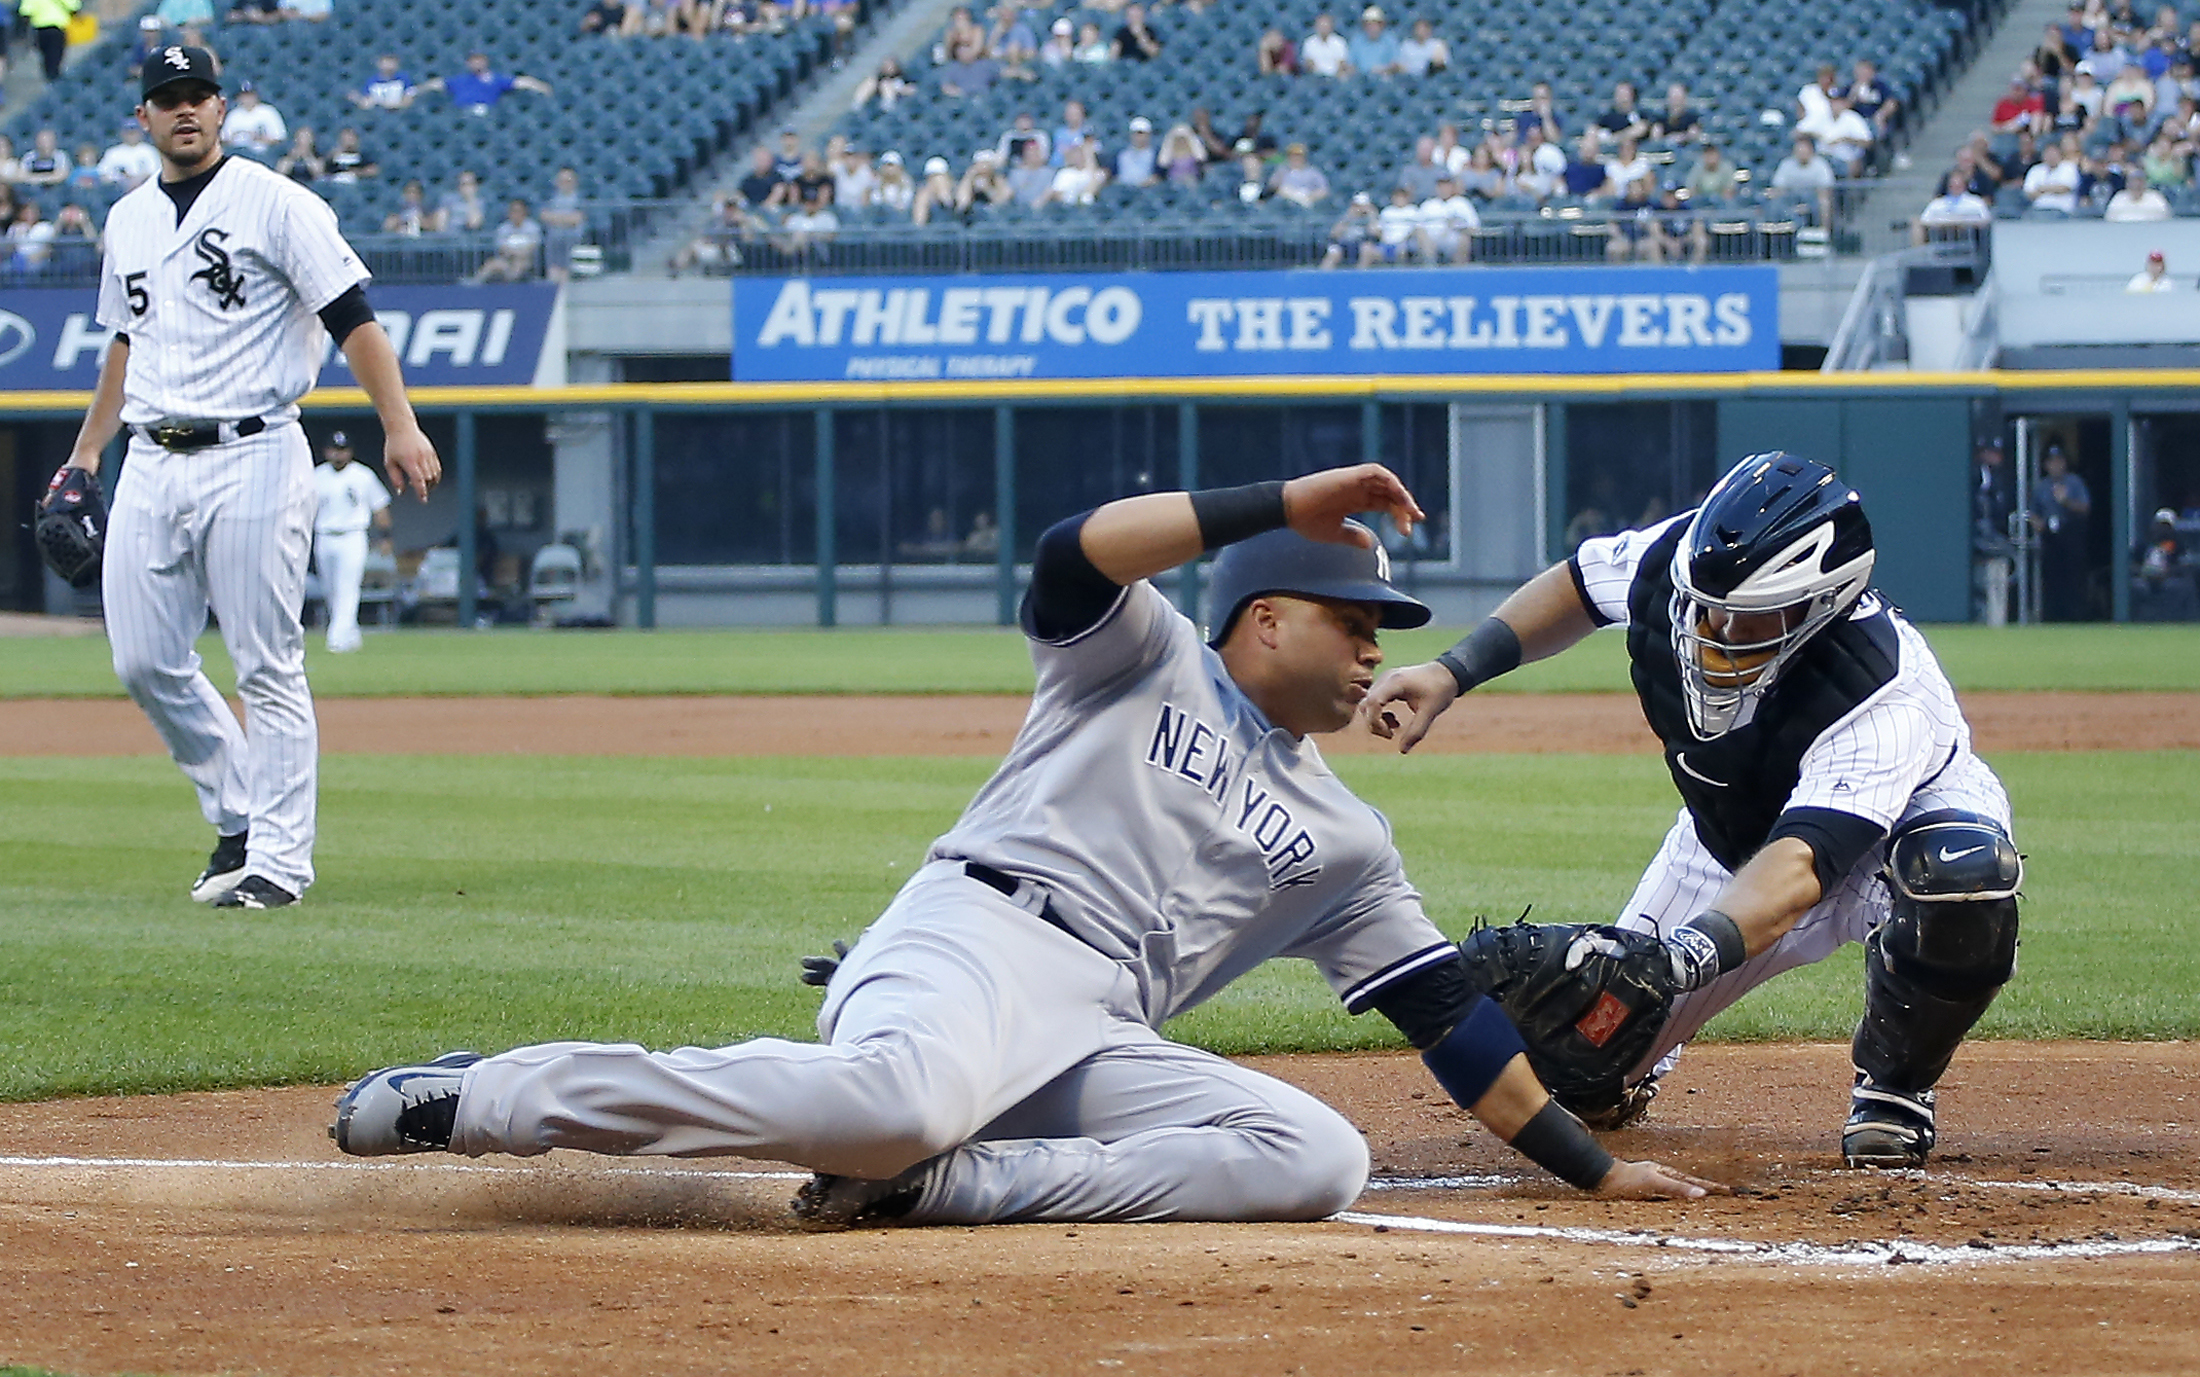 New York Yankees right fielder Carlos Beltran, center, is tagged out at home by Chicago White Sox catcher Alex Avila, right, as White Sox starting pitcher Carlos Rodon, left, looks on during the first inning of a baseball game in Chicago, on Tuesday, July